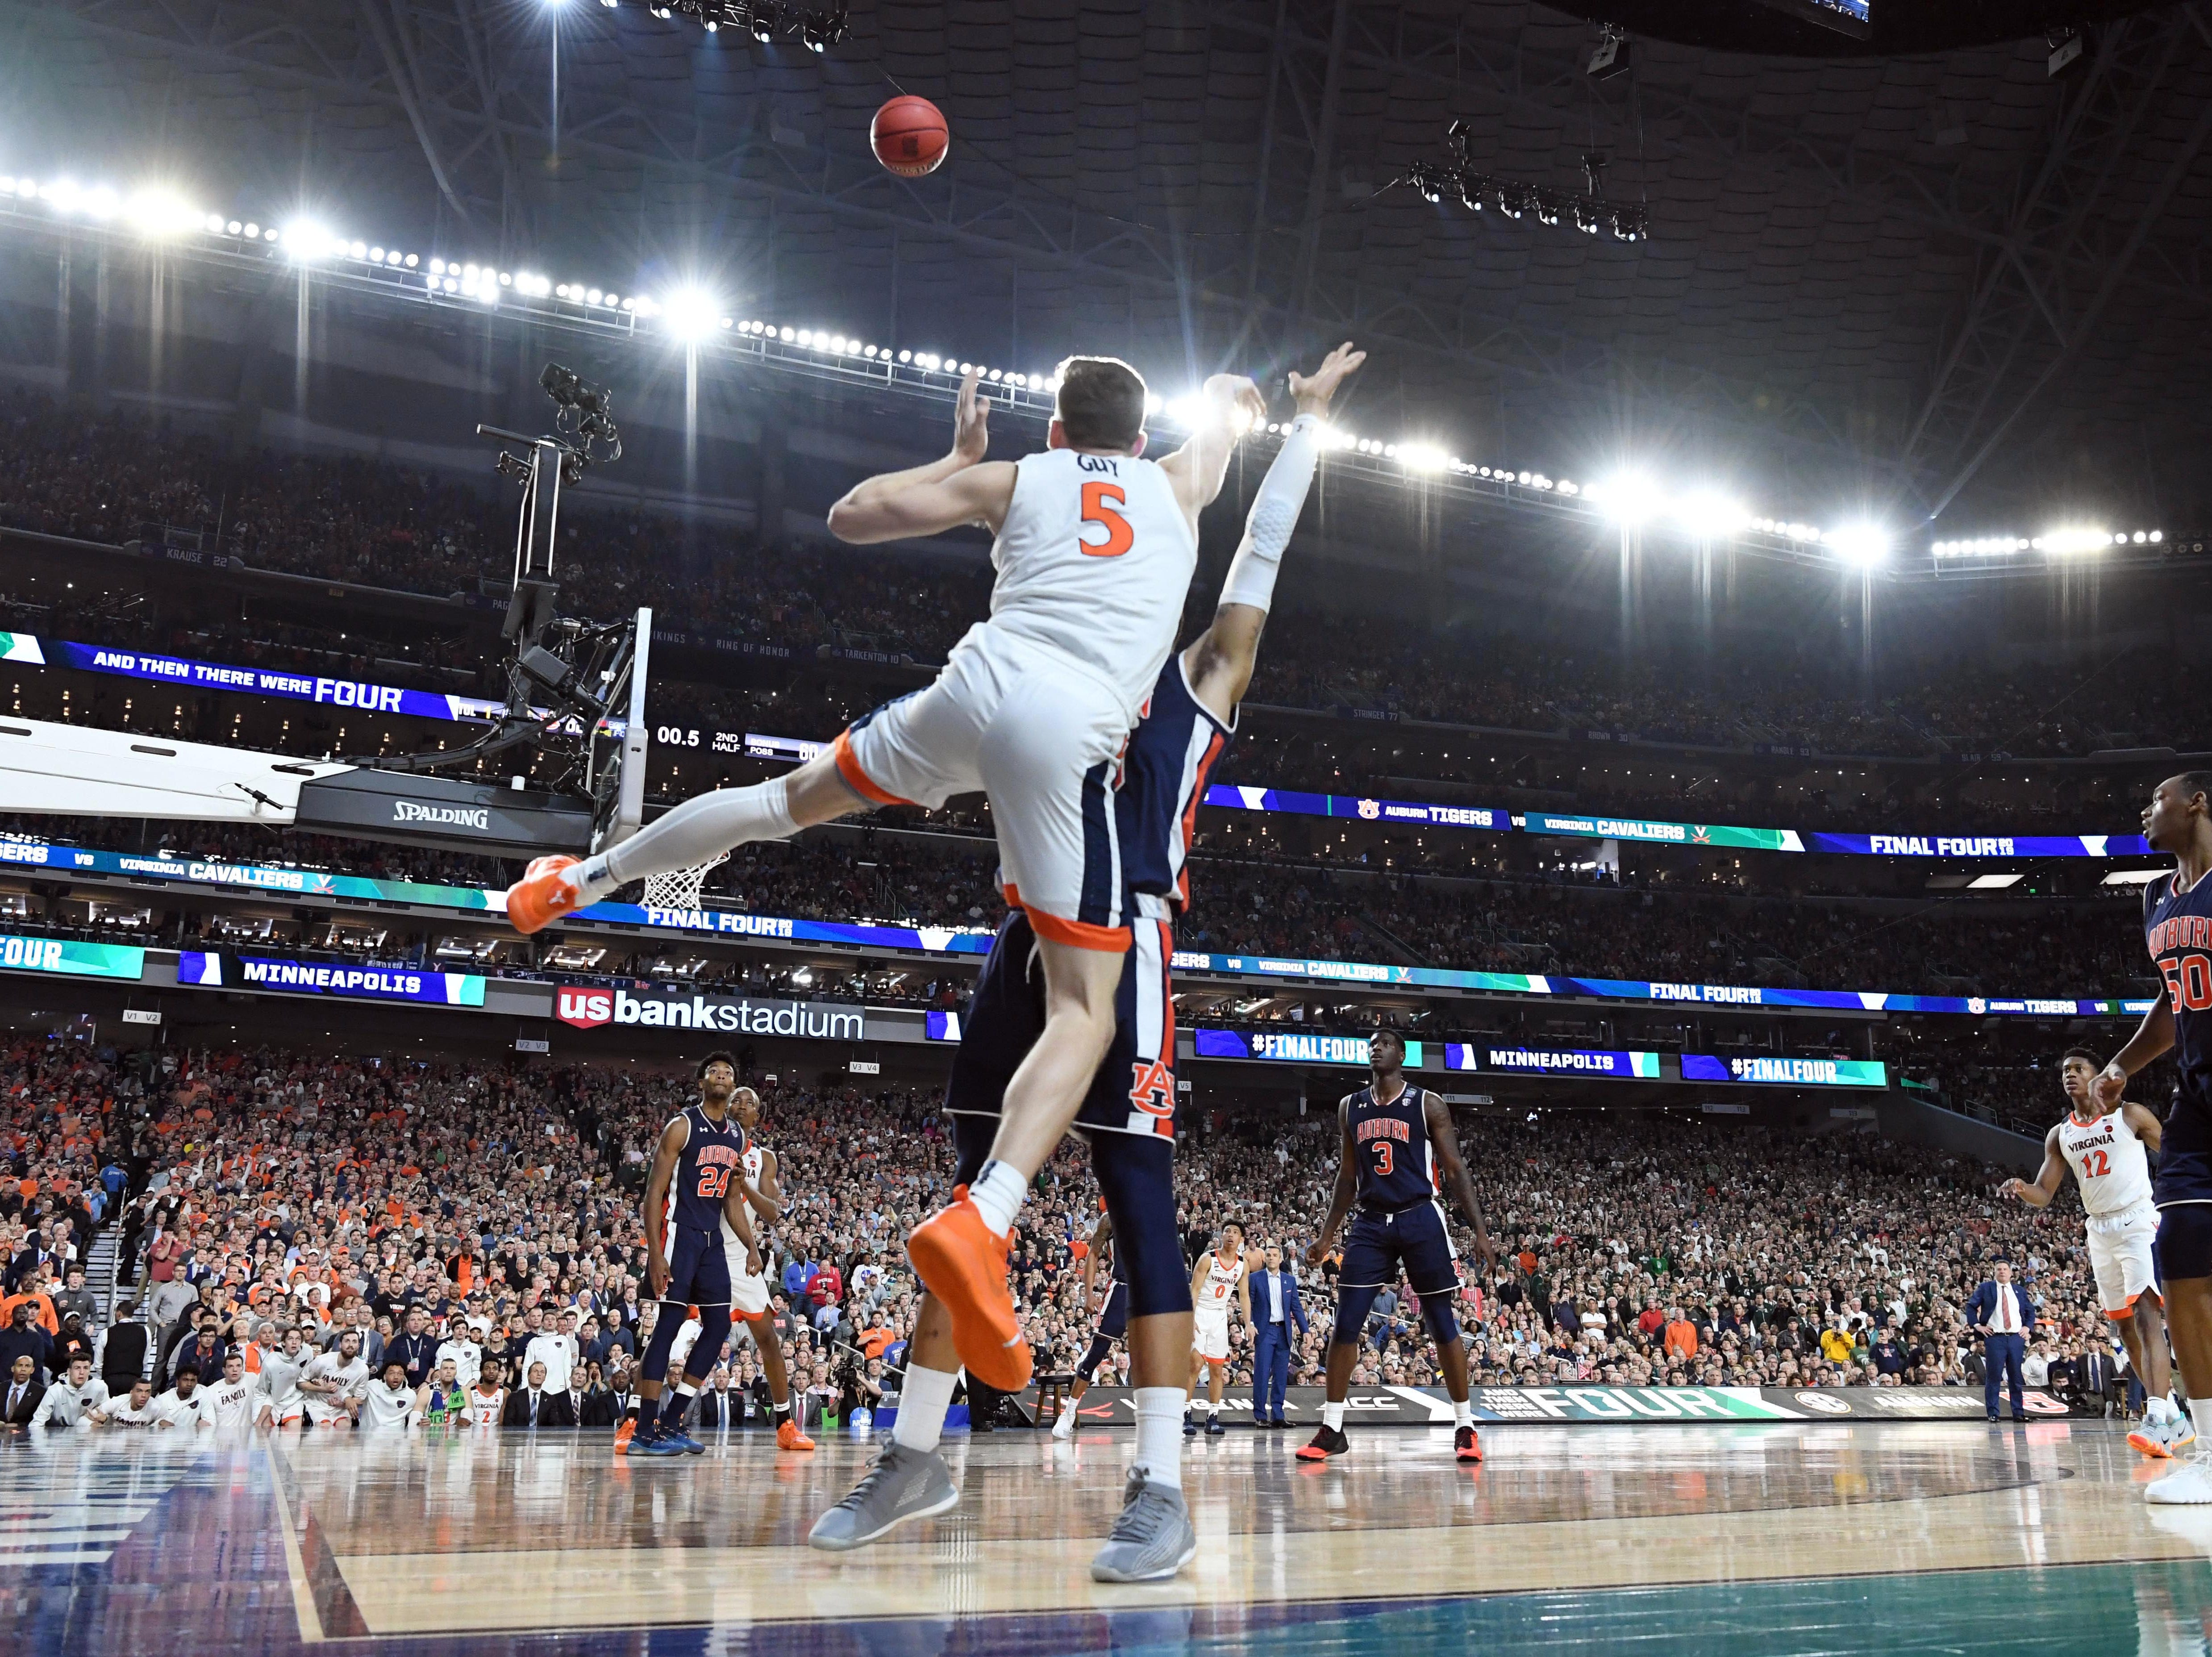 Final four: Virginia Cavaliers guard Kyle Guy is fouled on a 3-point shot in the final seconds against the Auburn Tigers.